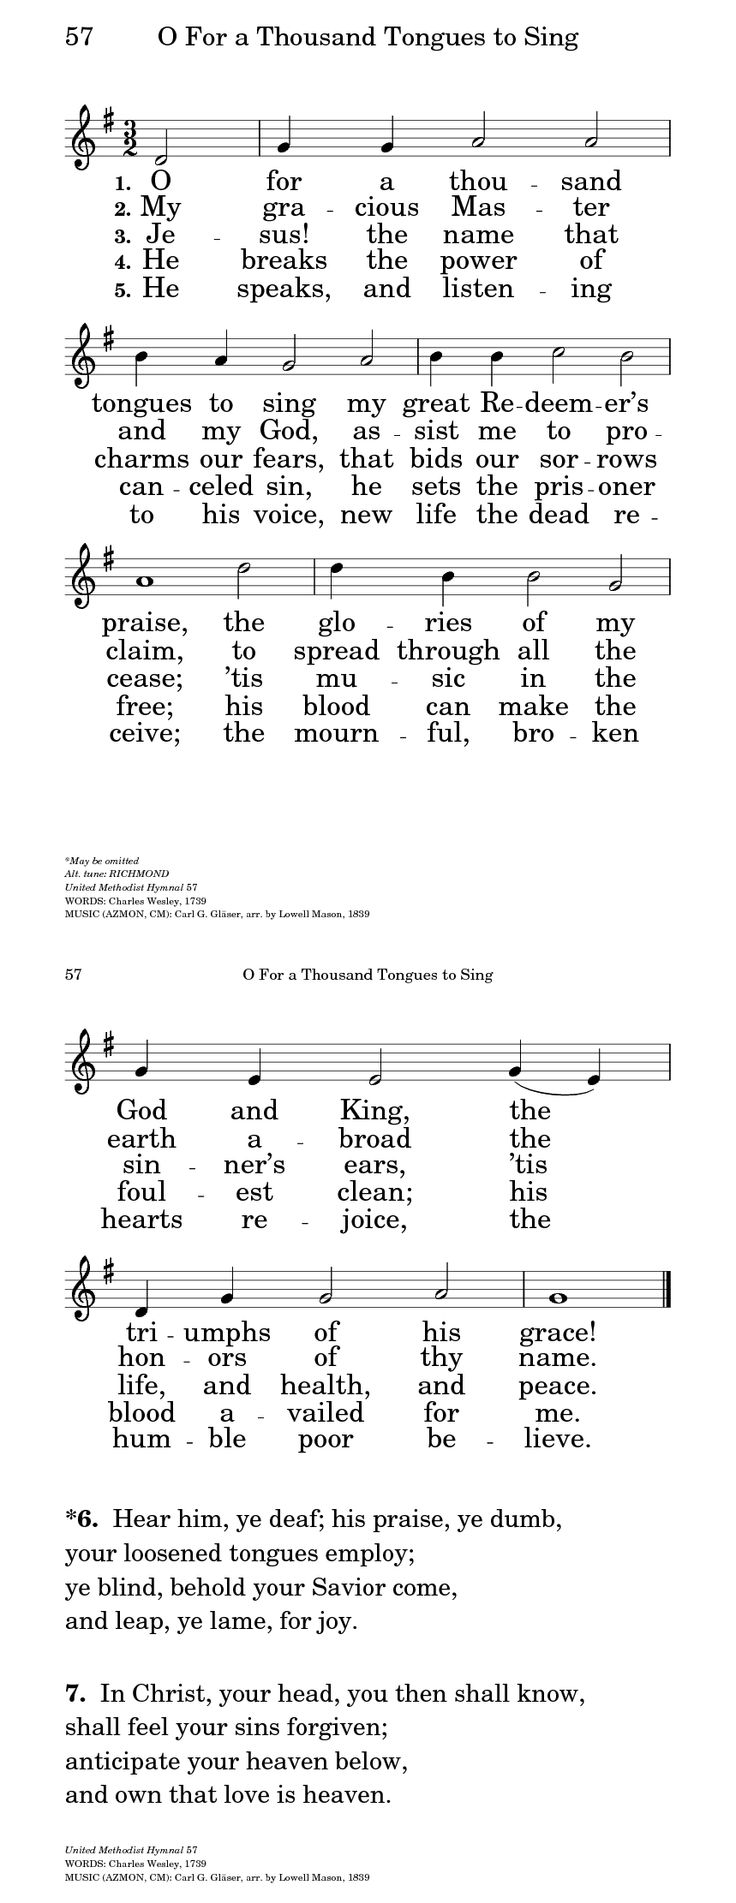 The United Methodist Hymnal 57. O for a thousand tongues to sing - Hymnary.org